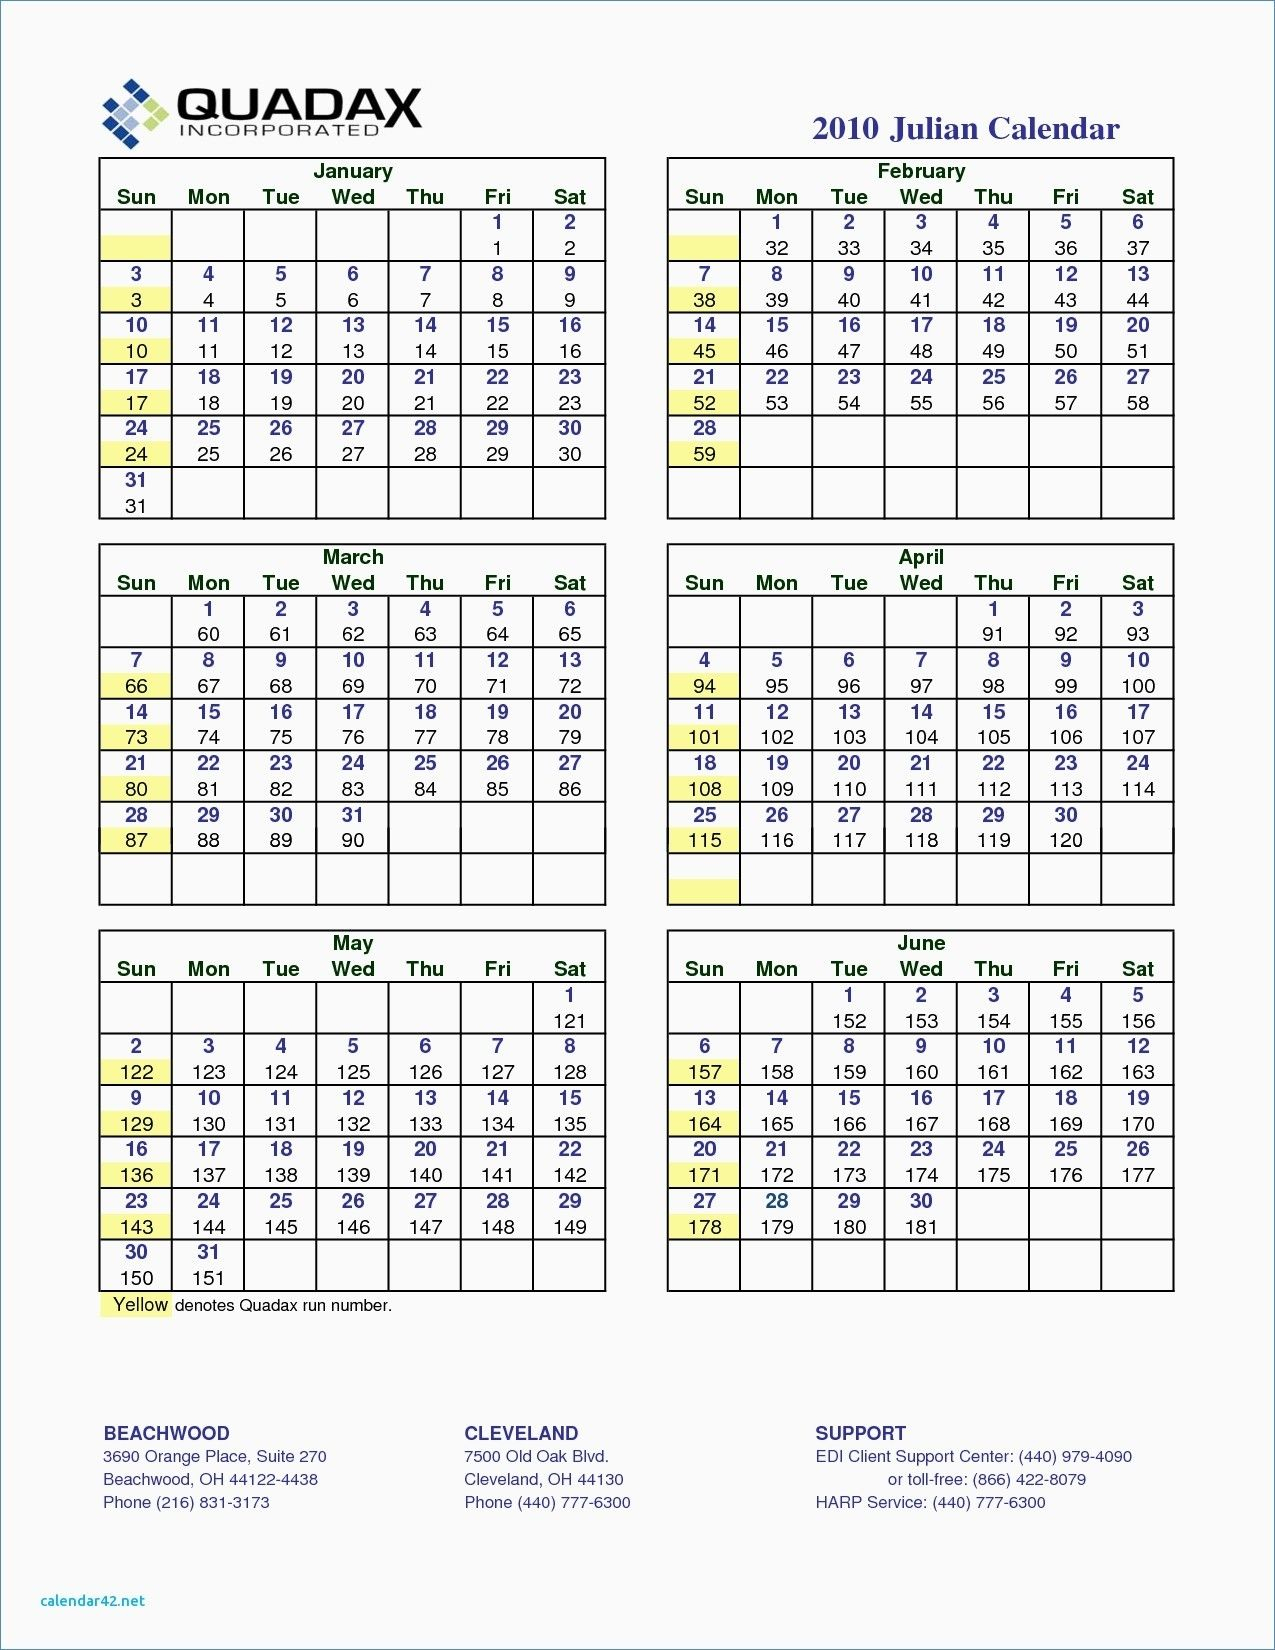 Julian Calendar 2019 Quadax July 2018 Calendar Sri Lanka regarding 2020 Julian Calendar